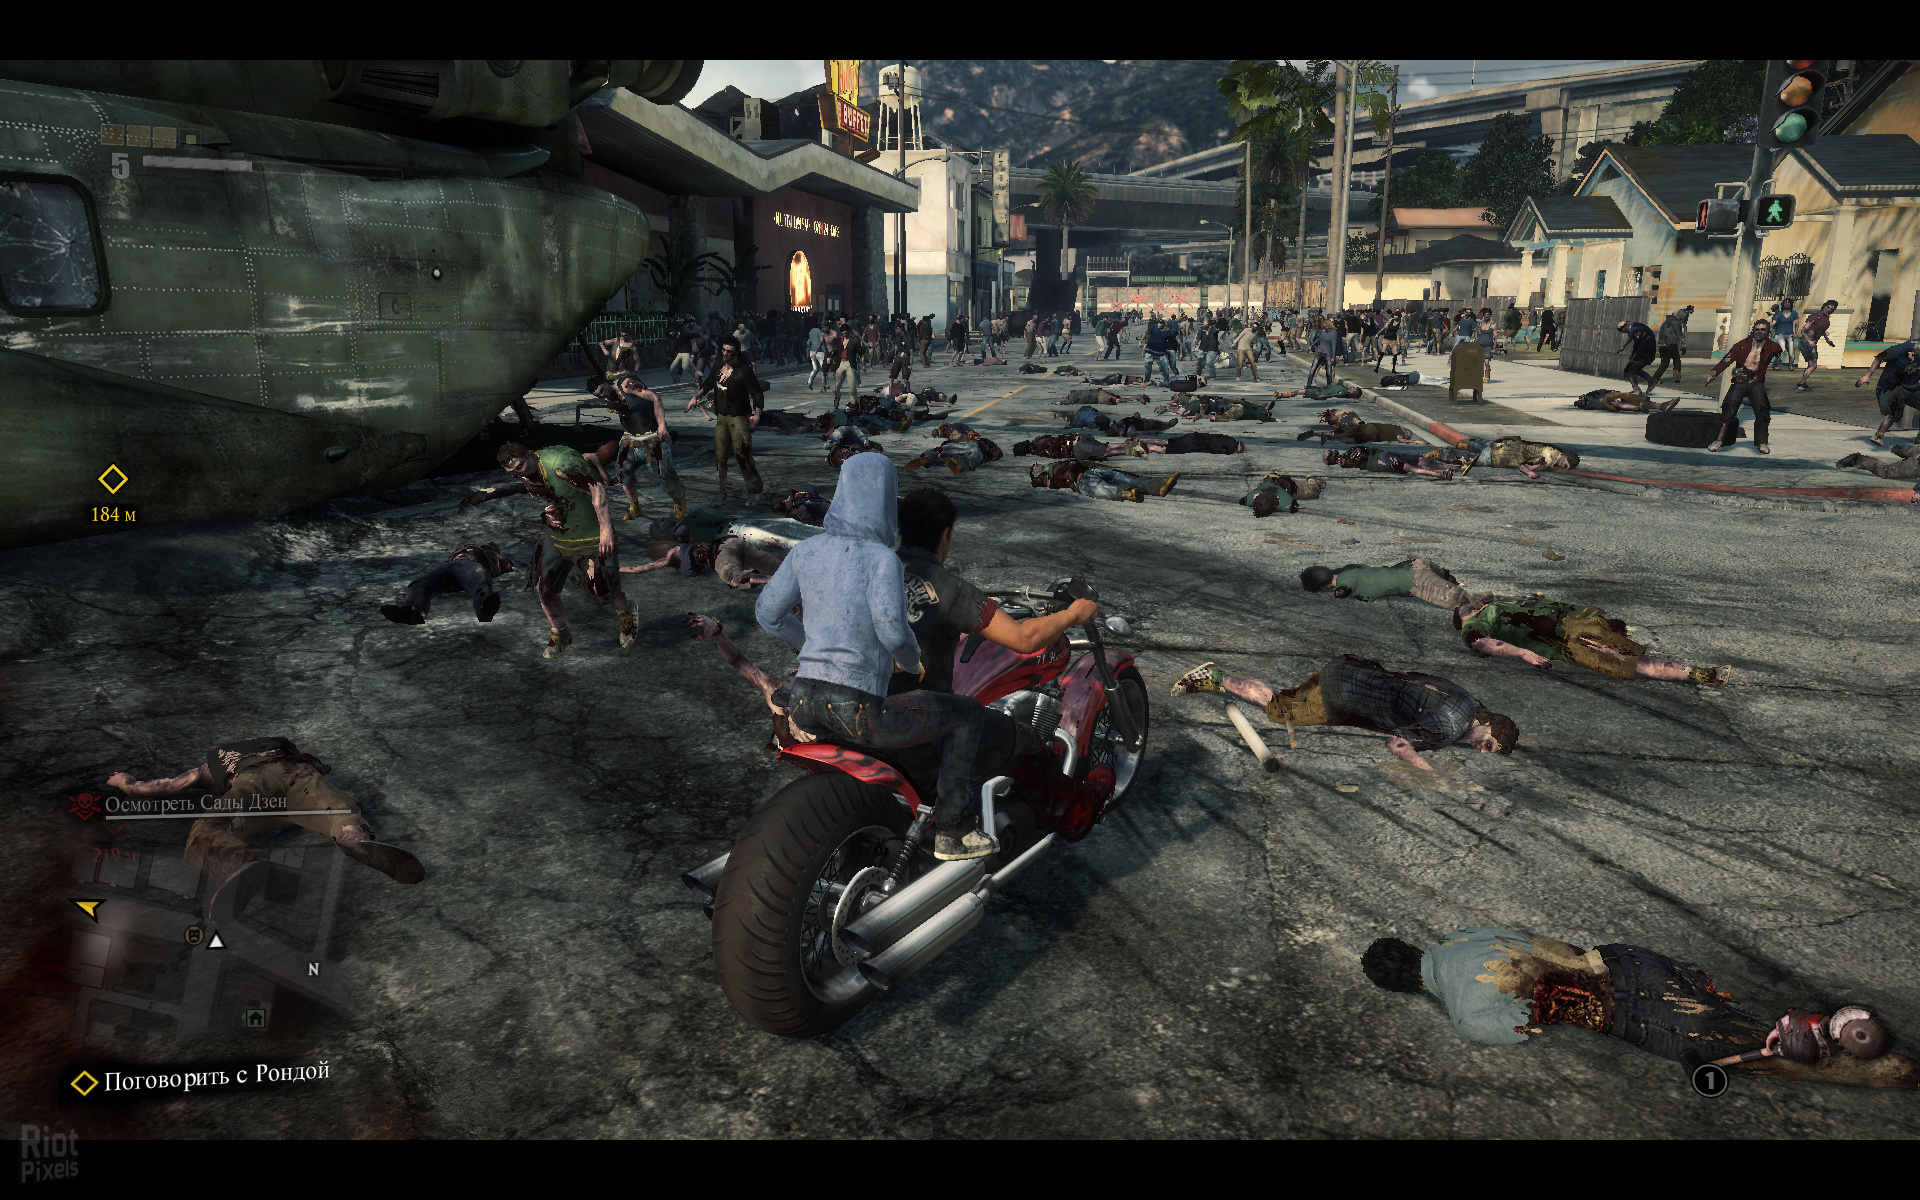 Dead Rising 3 Apocalypse Edition Game Screenshots At Riot Pixels Images